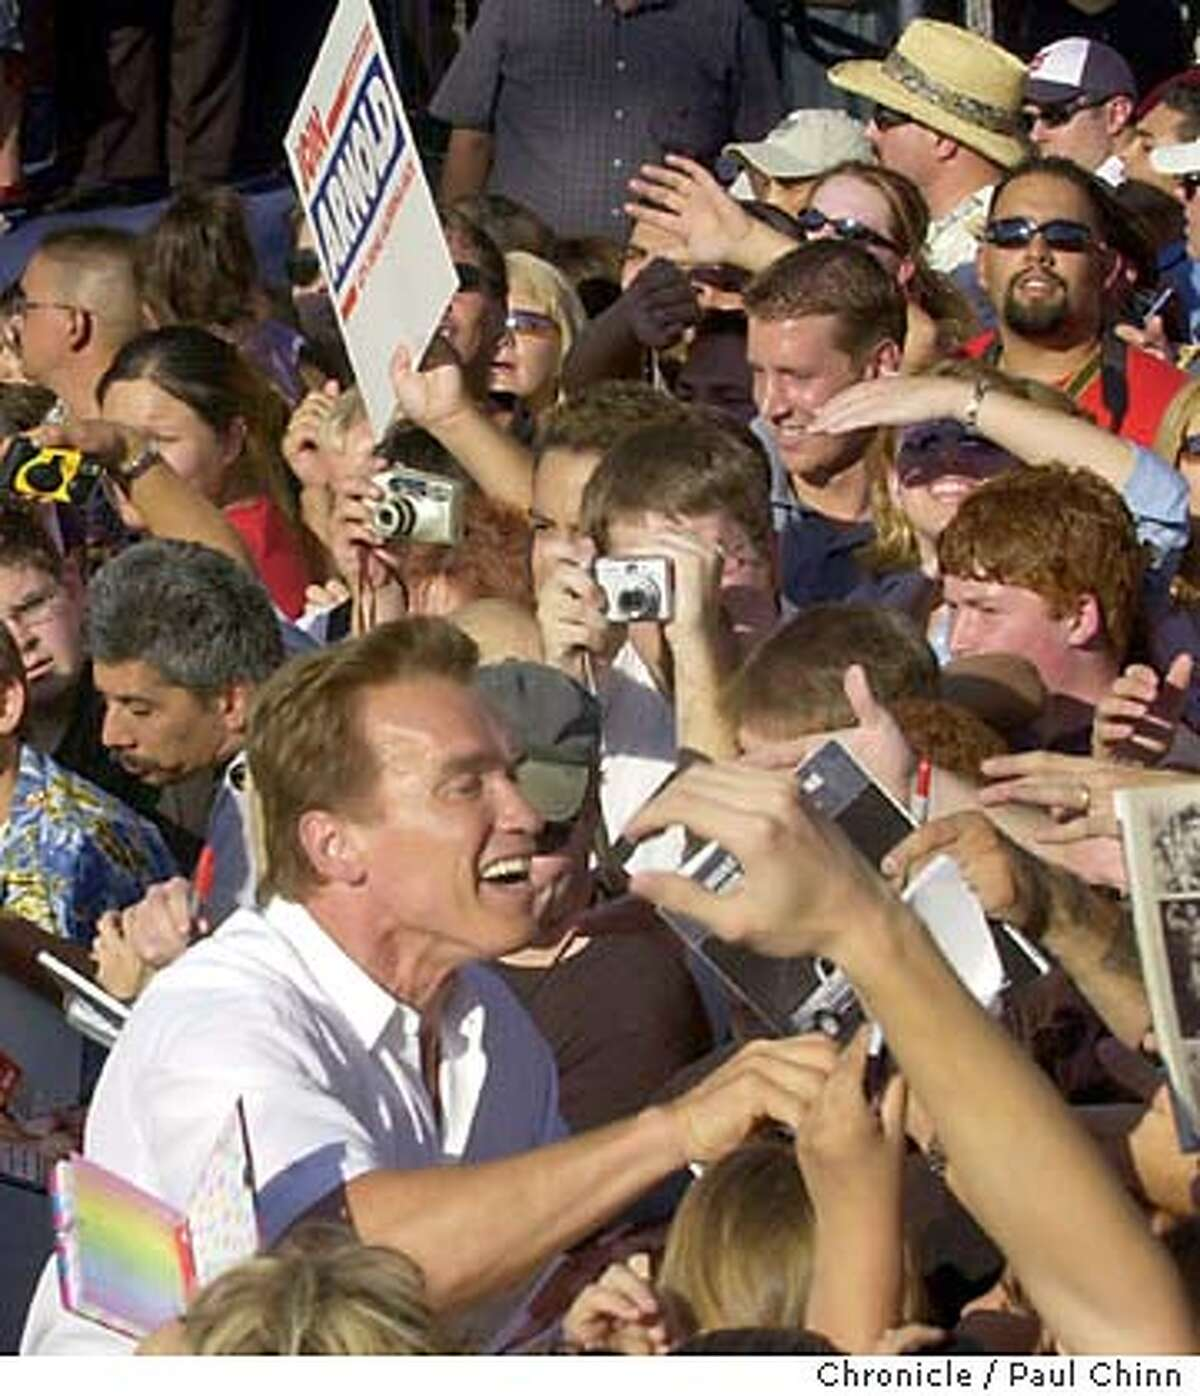 arnold220_pc.jpg Schwarzenegger went out into the crowd to shake hands with supporters after a rally at River Park shopping center. Schwarzenegger campaigns at three locations in Fresno on 8/28/03. PAUL CHINN / The Chronicle